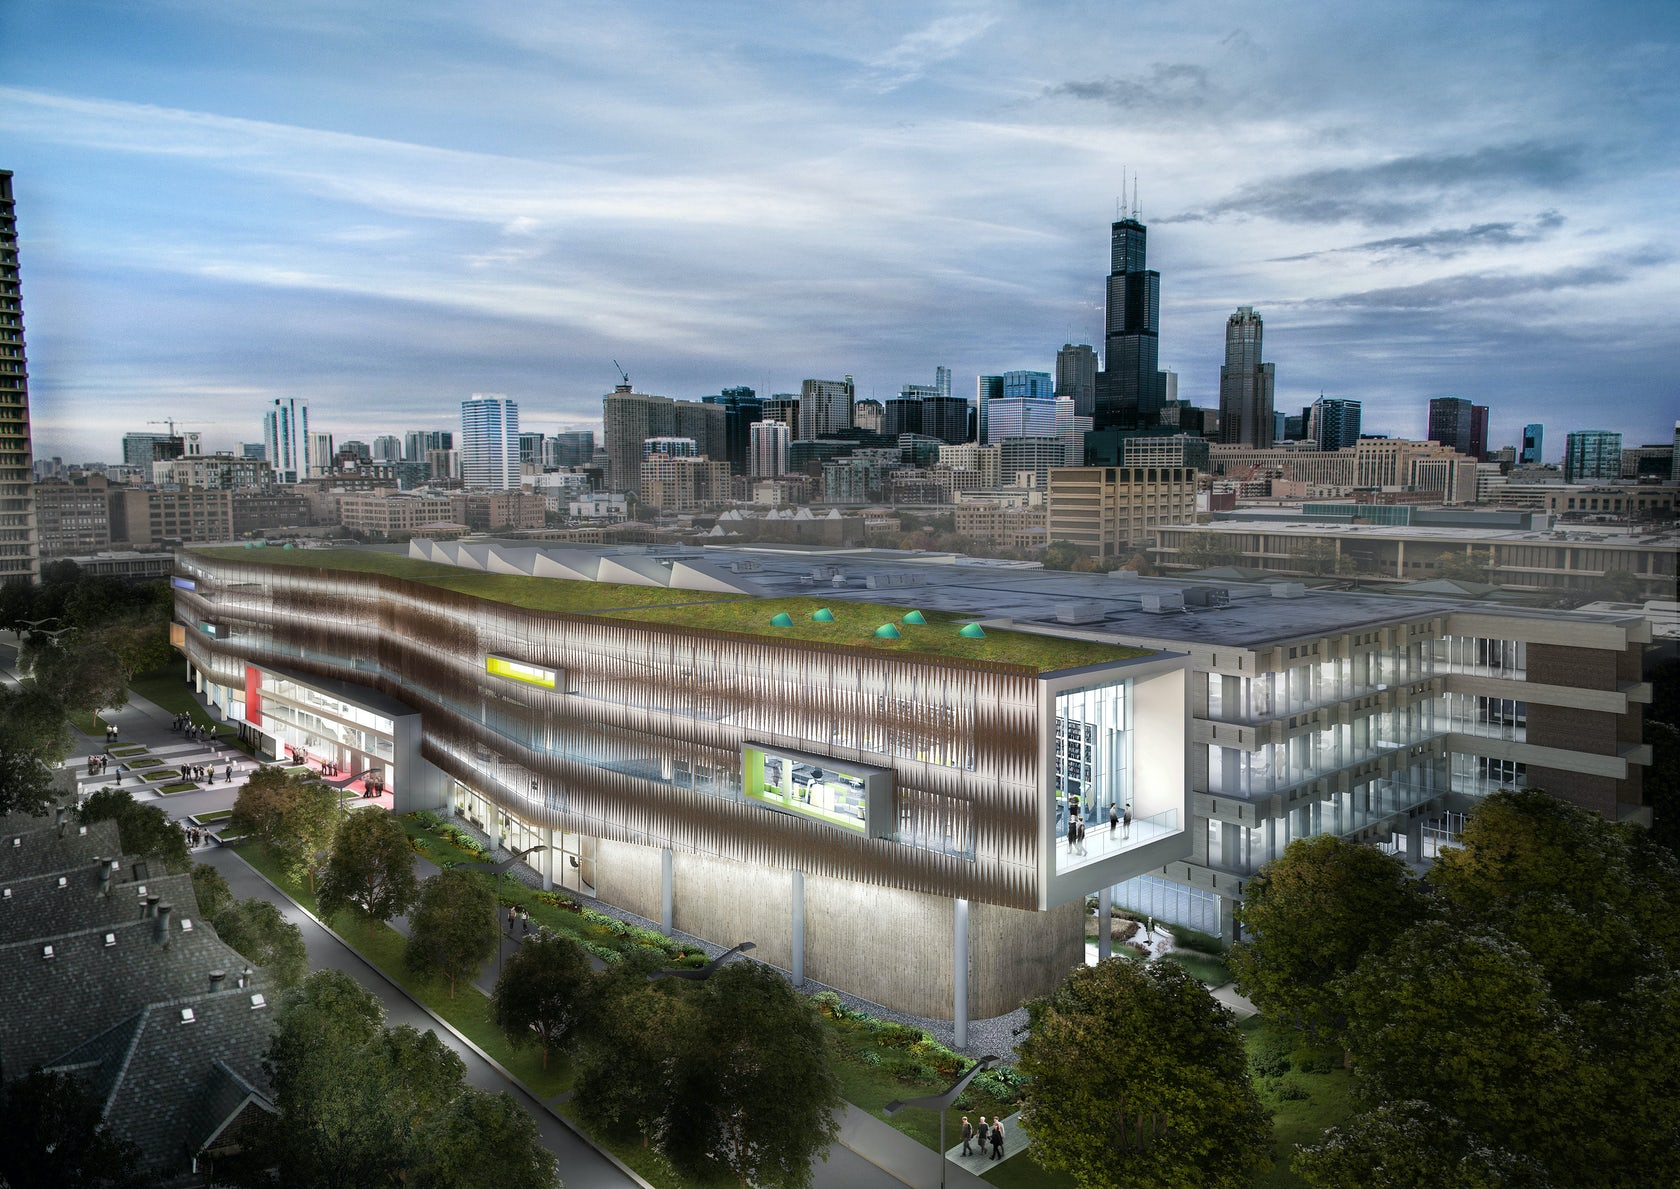 UIC Richard Daley Library Addition Master Plan on Architizer